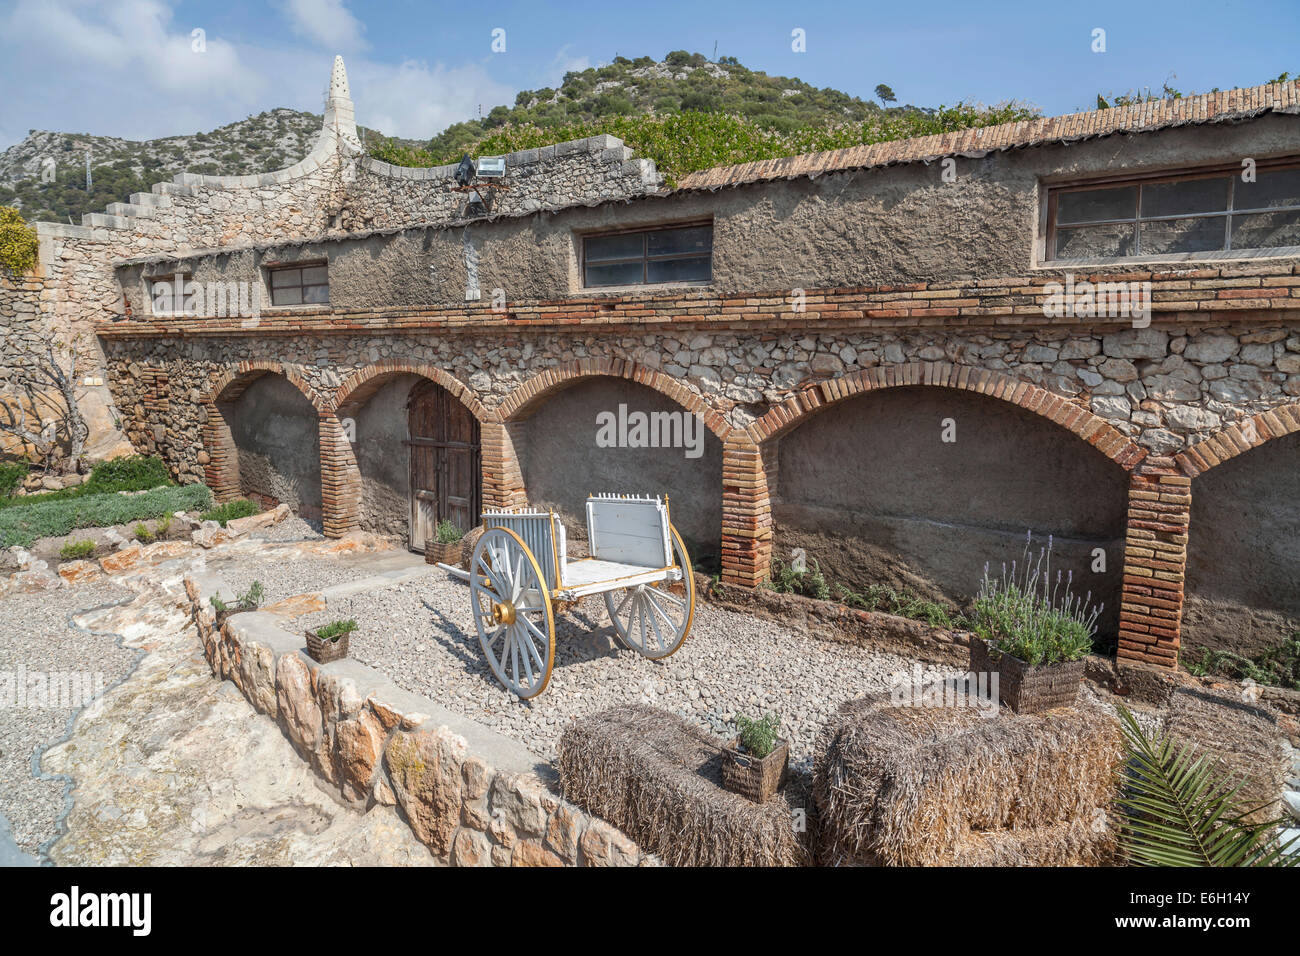 Celler Güell by Antoni Gaudí,Garraf,Sitges,Catalonia,Spain. - Stock Image